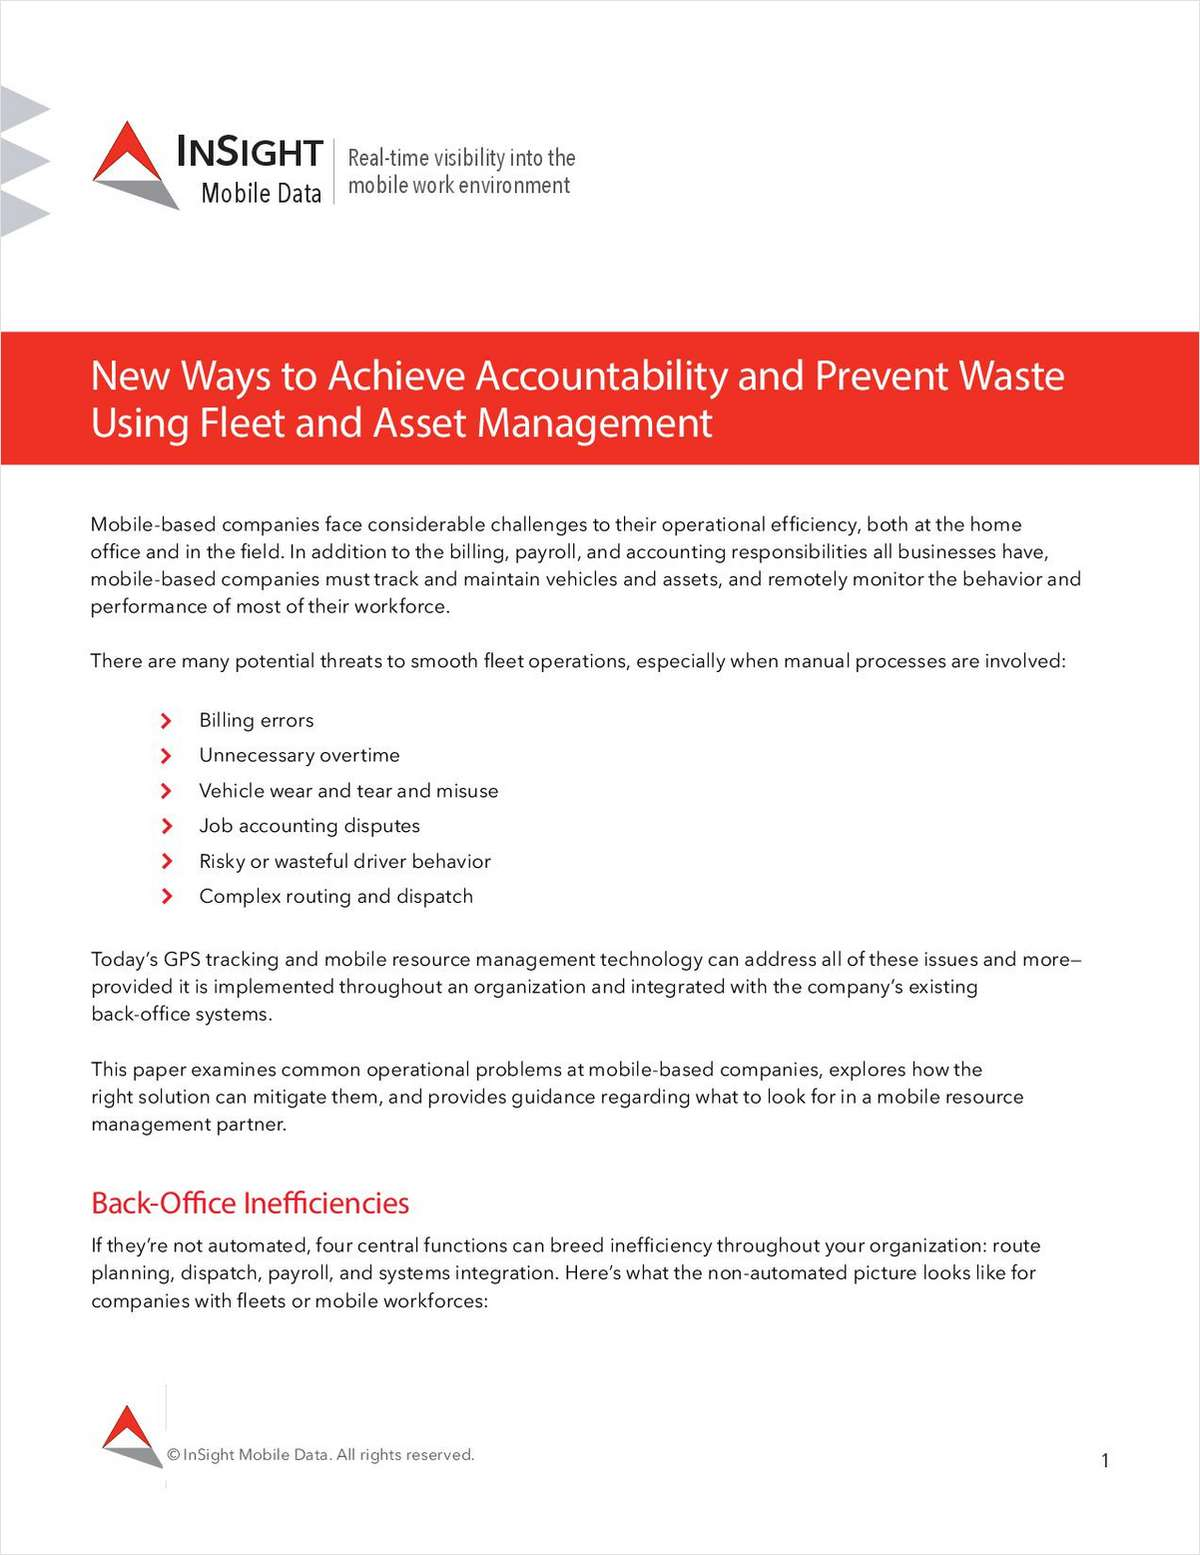 New Ways to Achieve Accountability and Prevent Waste Using Fleet and Asset Management